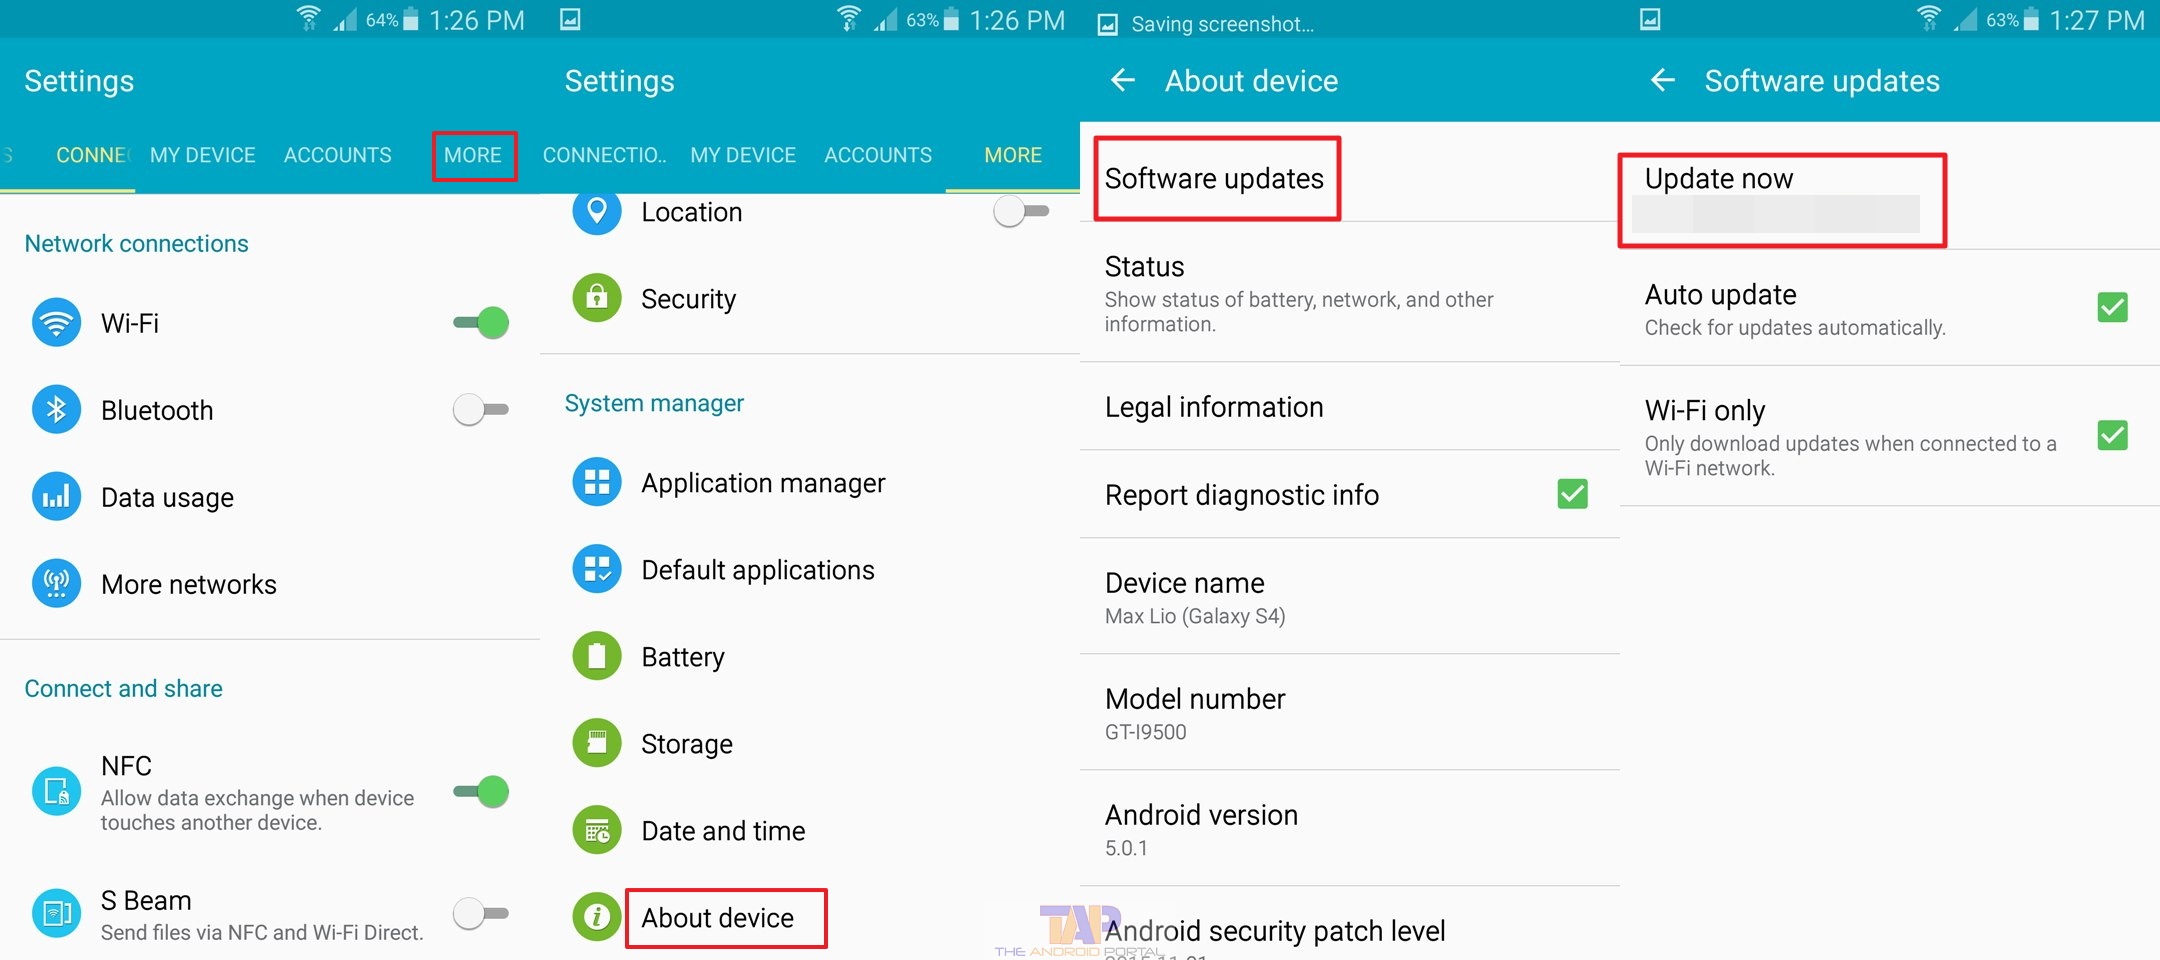 Phone Update Your Android Phone how do you update your android phone auto manual methods phone